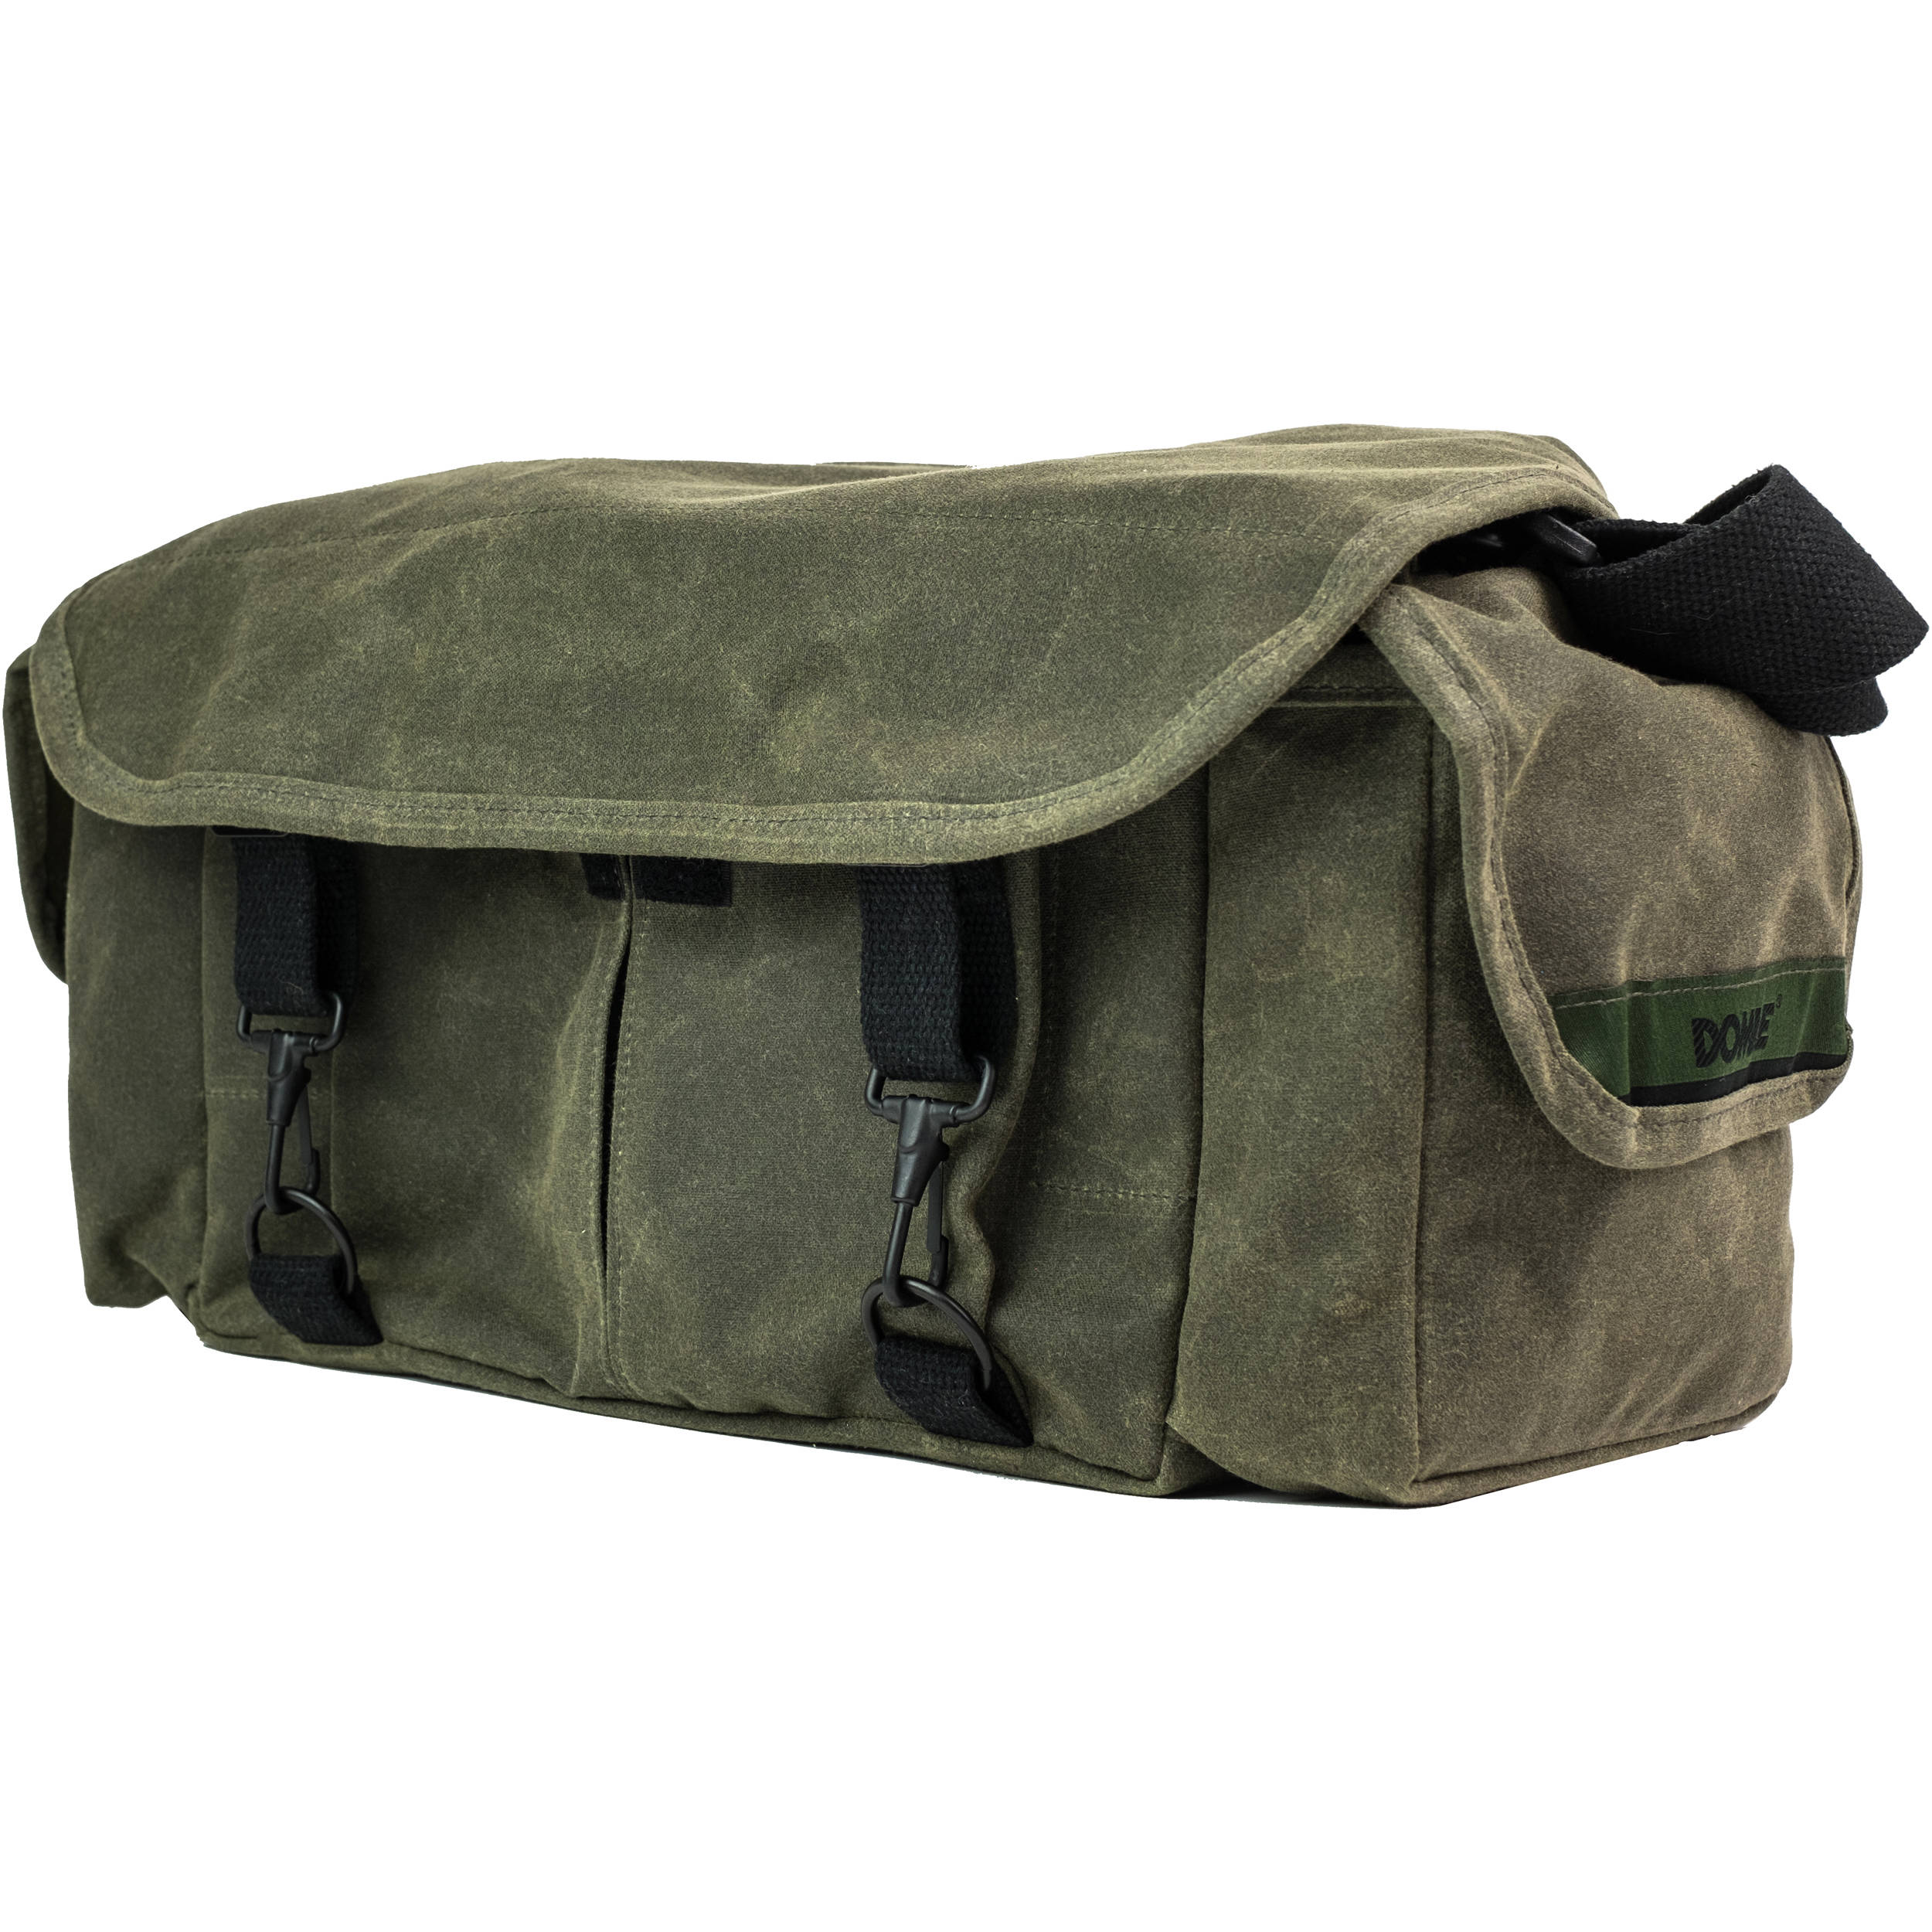 domke f 2 ruggedwear shooter 39 s bag military green 700 02m b h. Black Bedroom Furniture Sets. Home Design Ideas